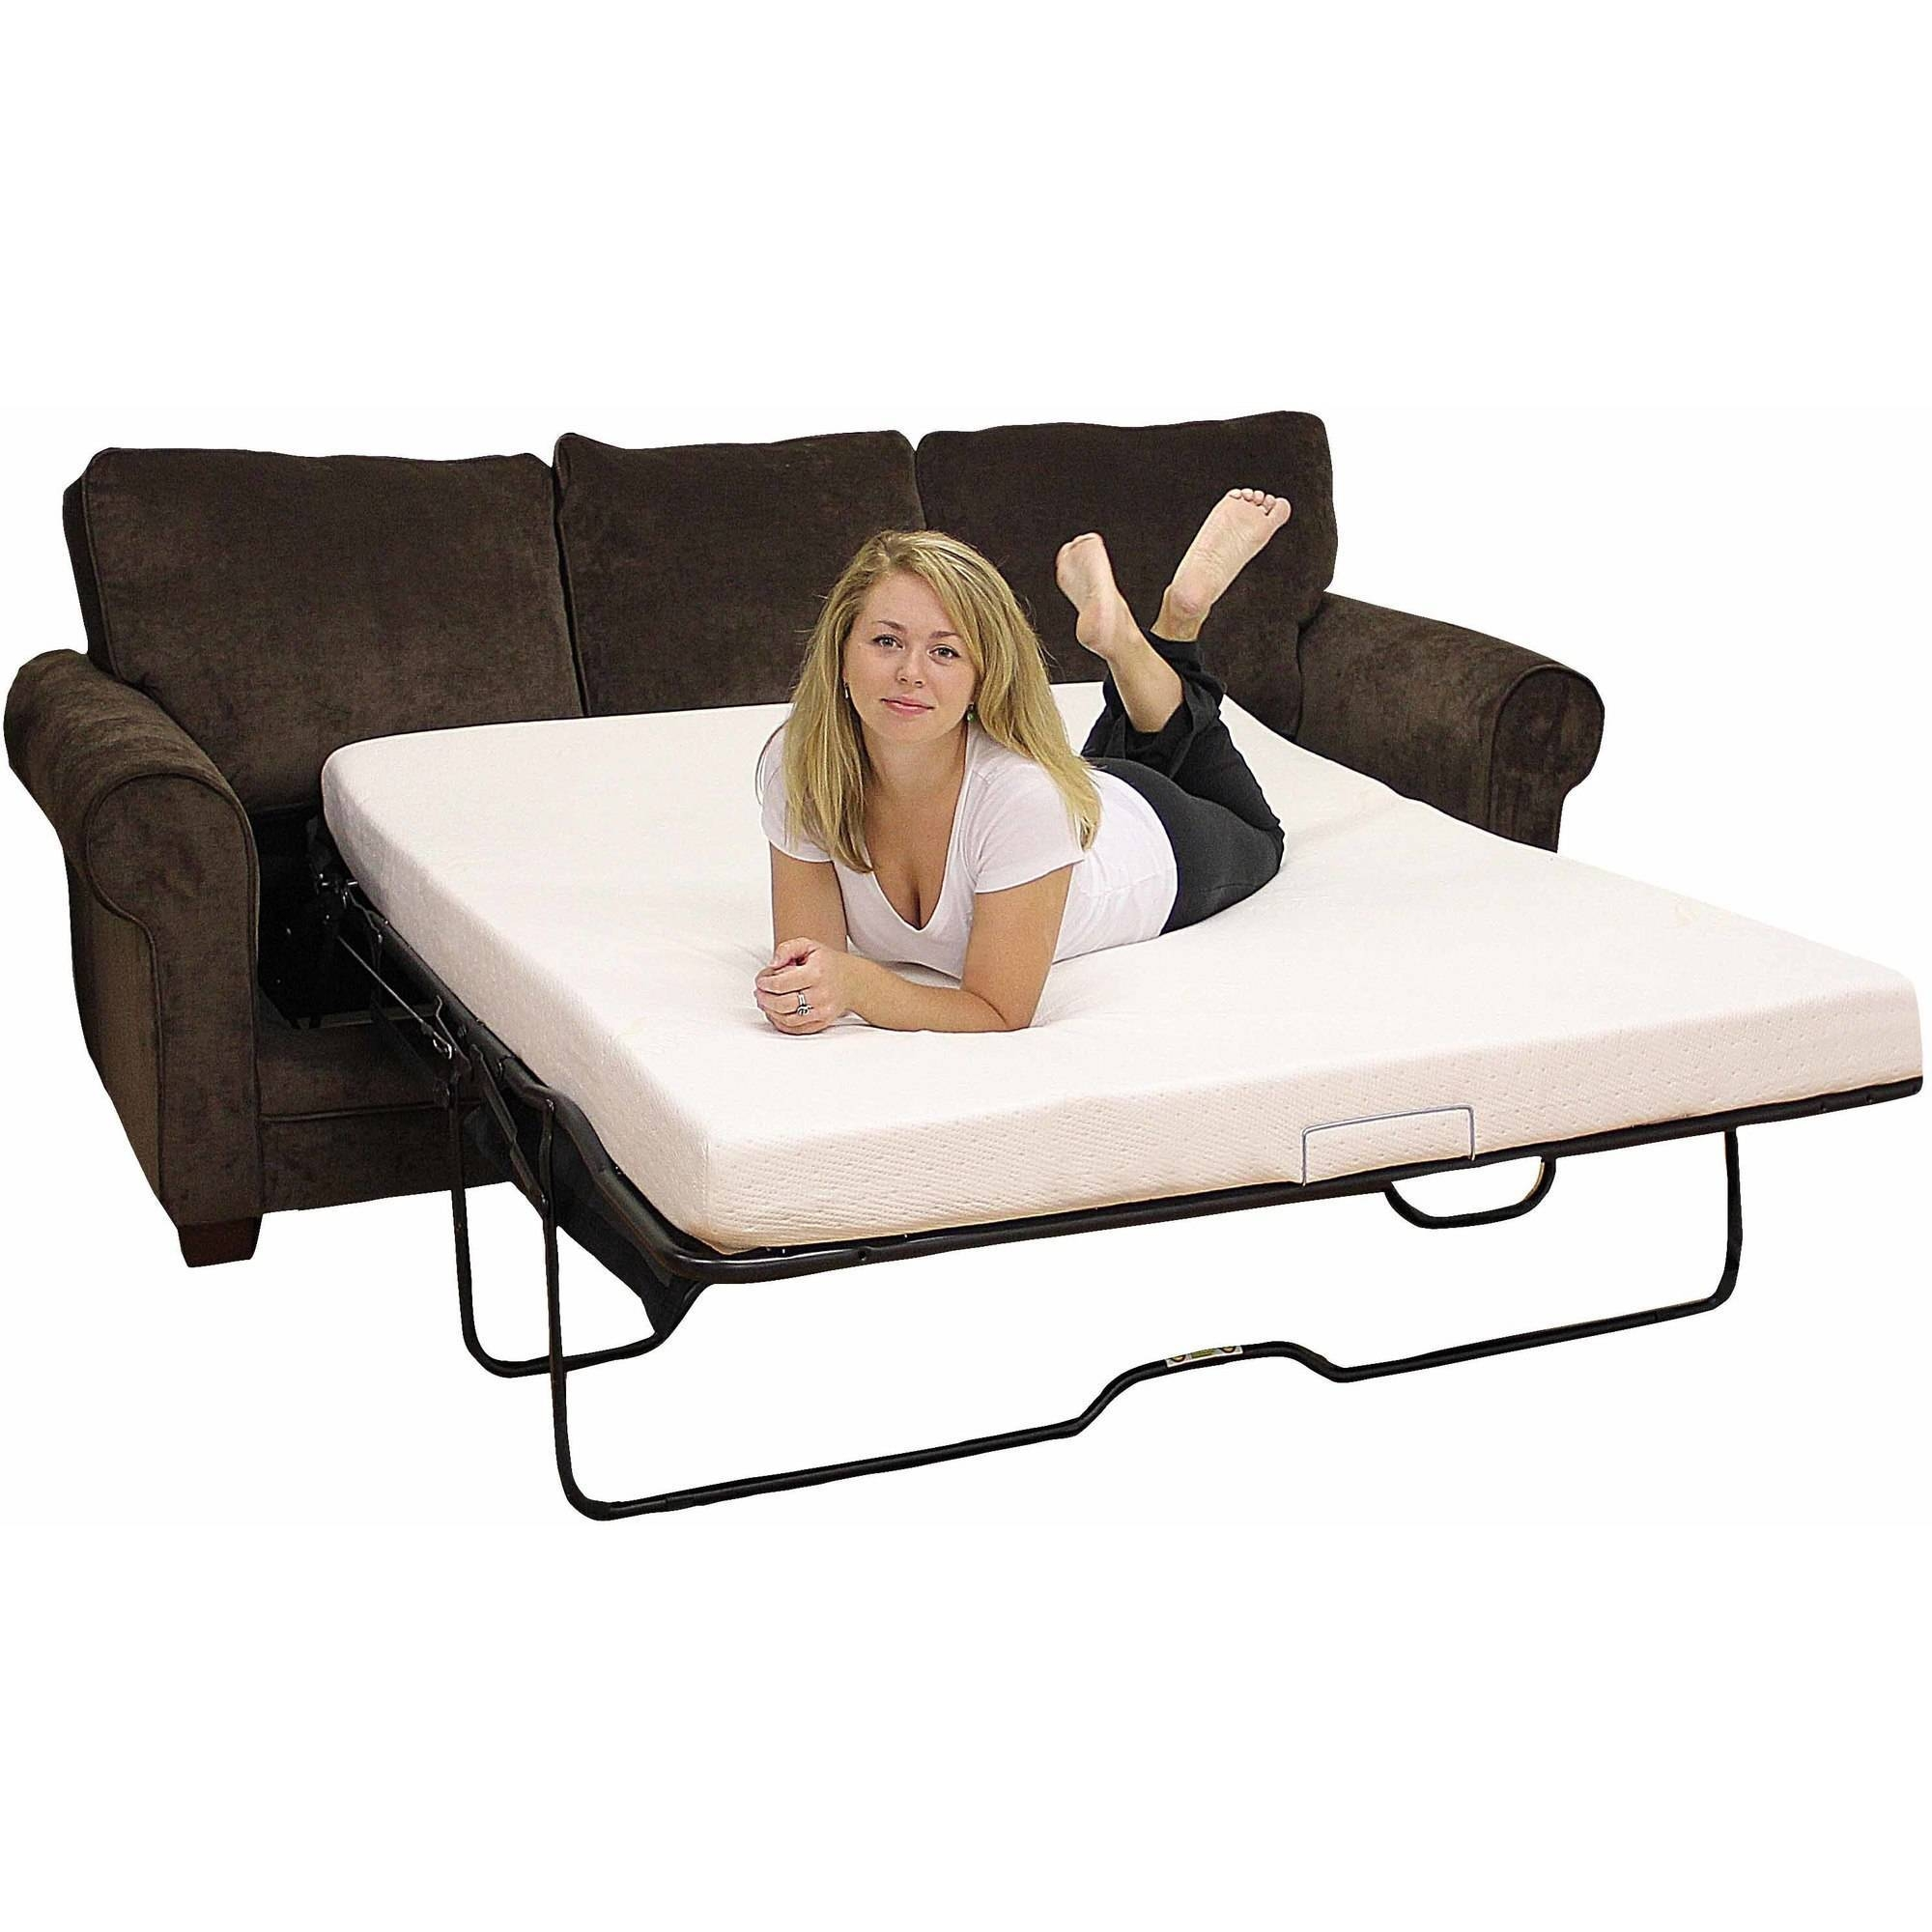 "Modern Sleep Memory Foam 4.5"" Sofa Bed Mattress, Multiple Sizes inside Sofa Beds With Mattress Support (Image 9 of 15)"